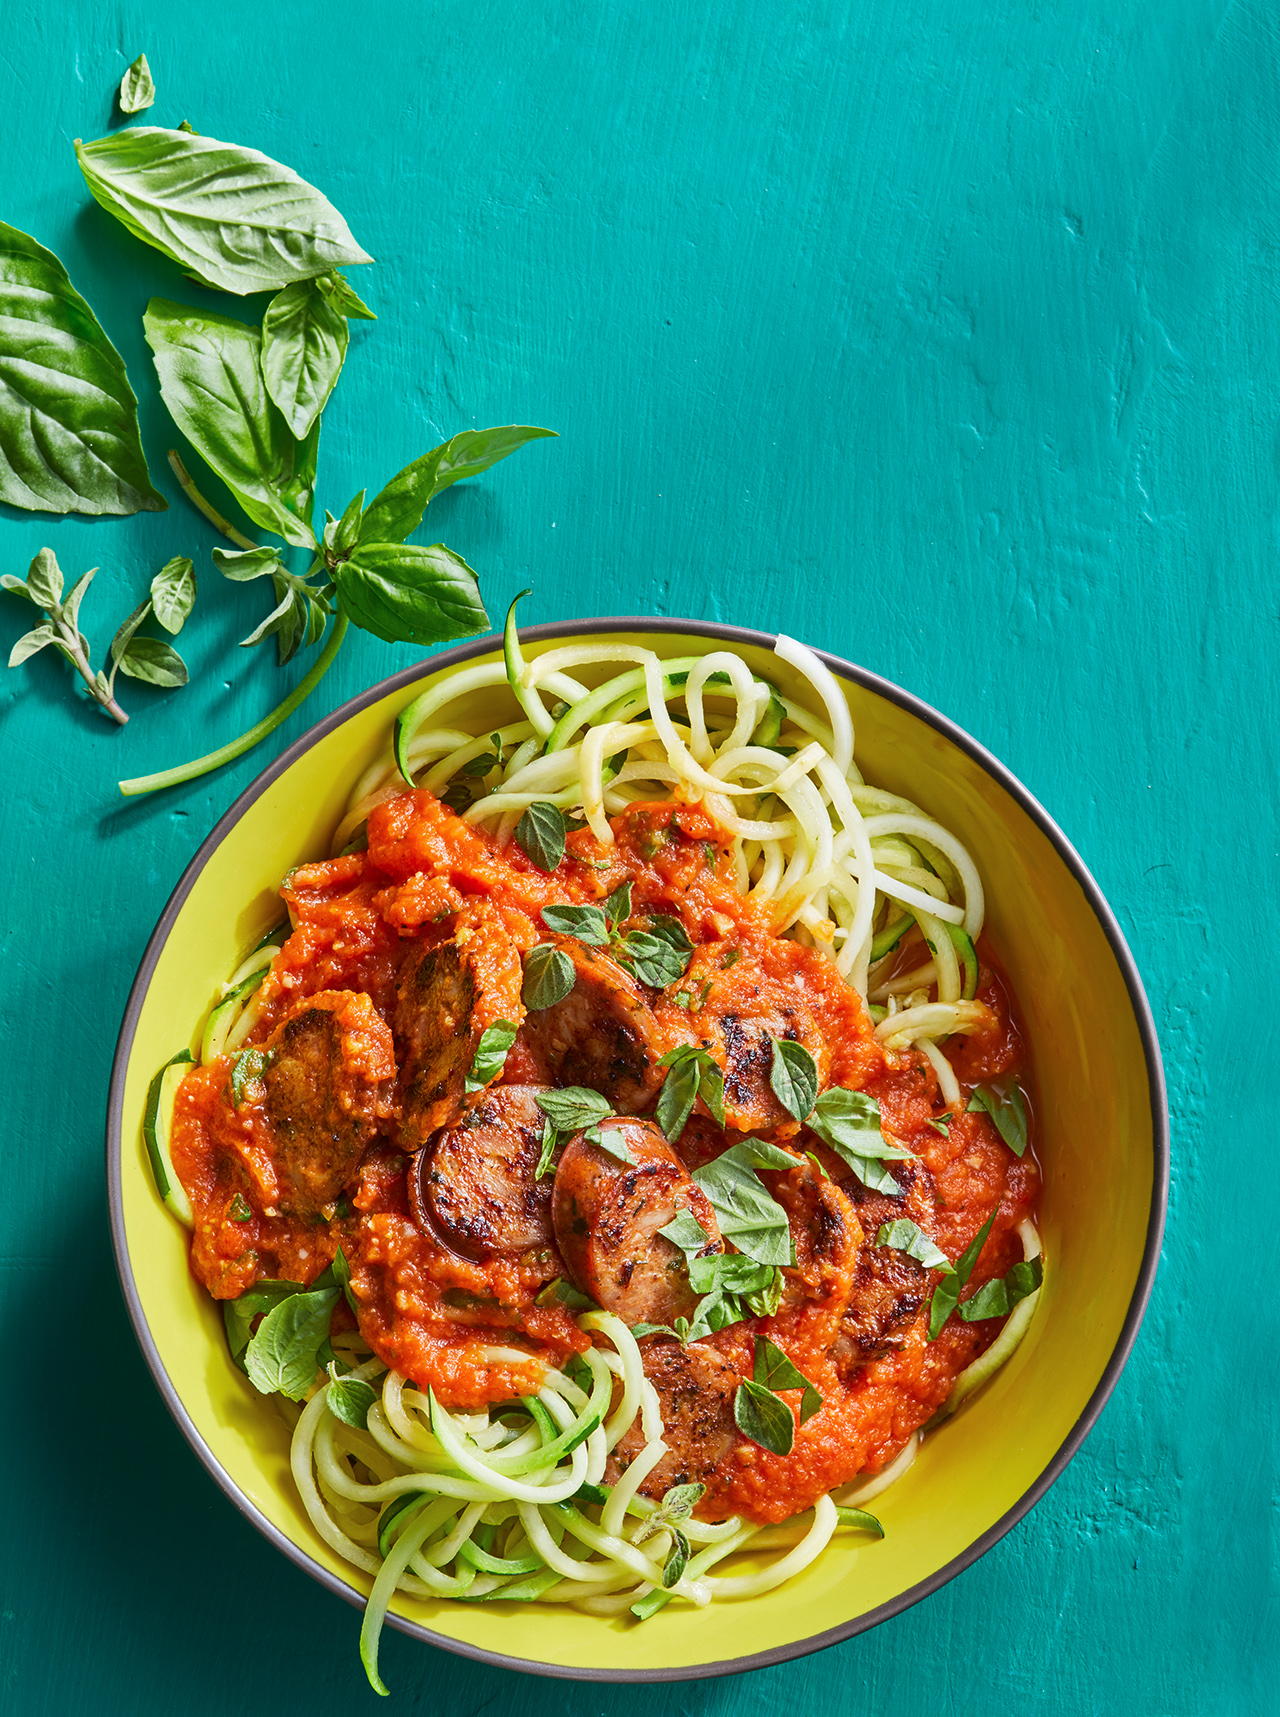 Vegetable Noodle Recipes: You Won't Miss the Carbs